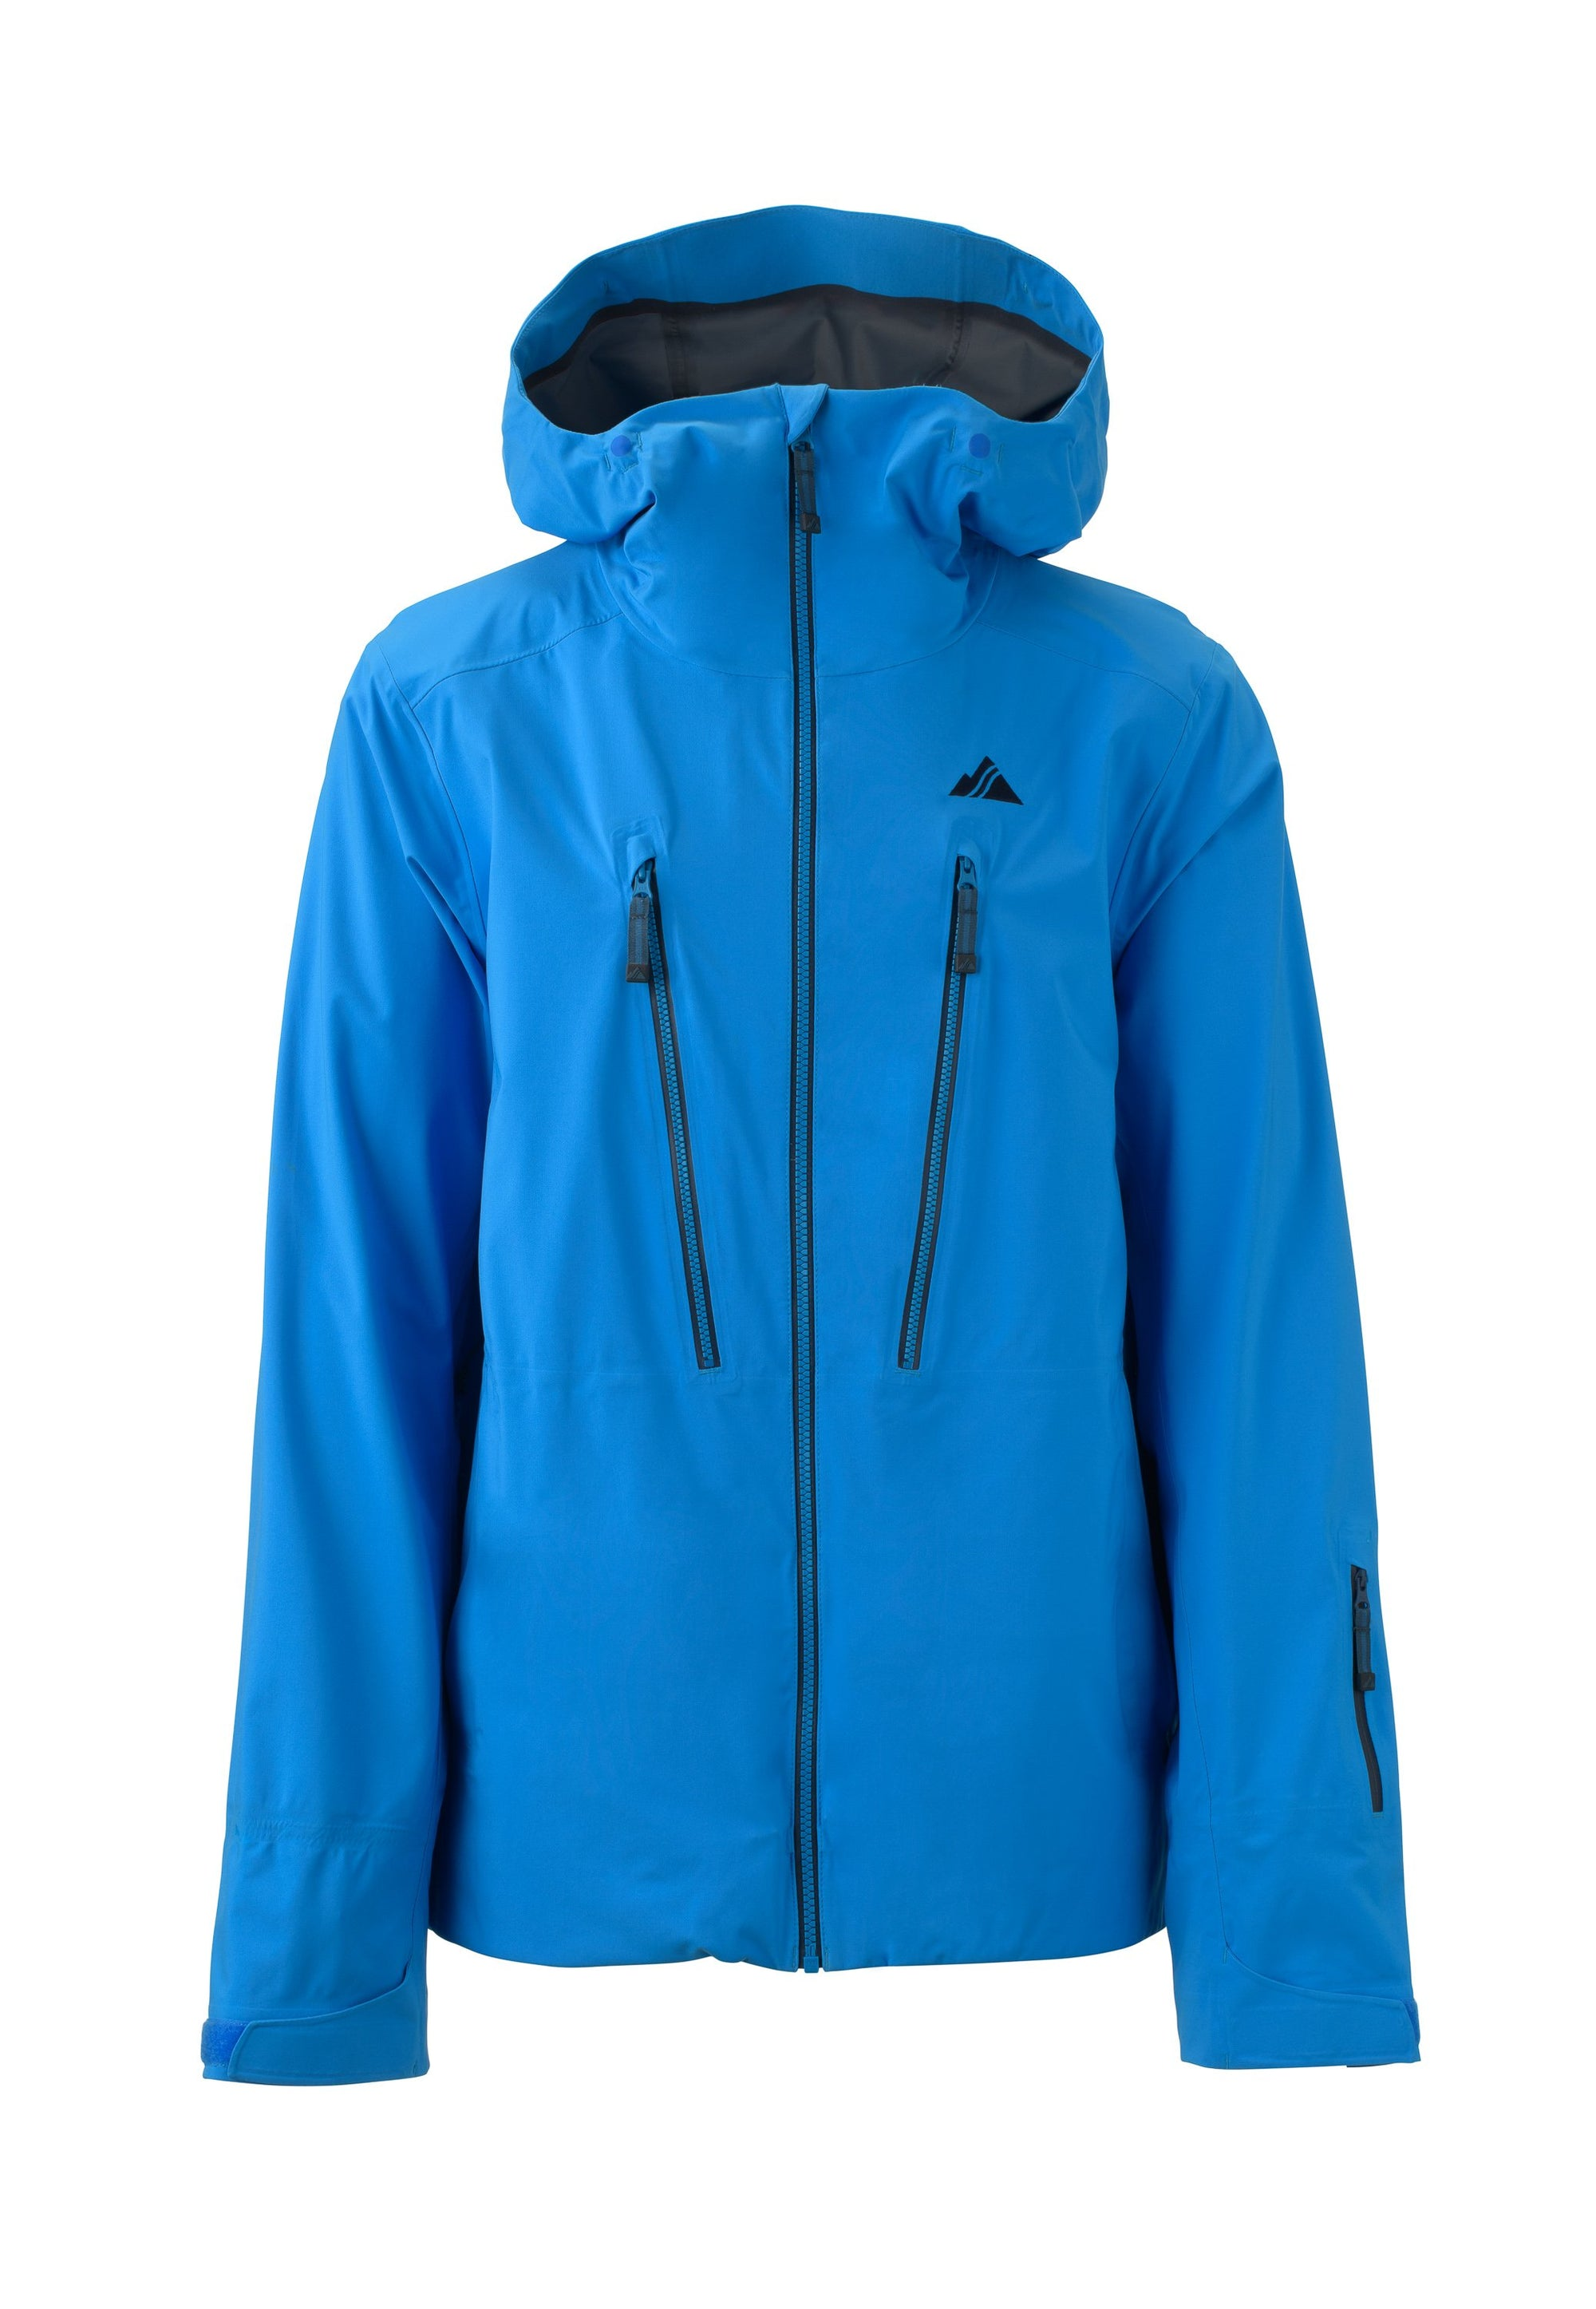 bright blue 2019 men's pyramid shell skiing and snowboarding jacket from strafe outerwear